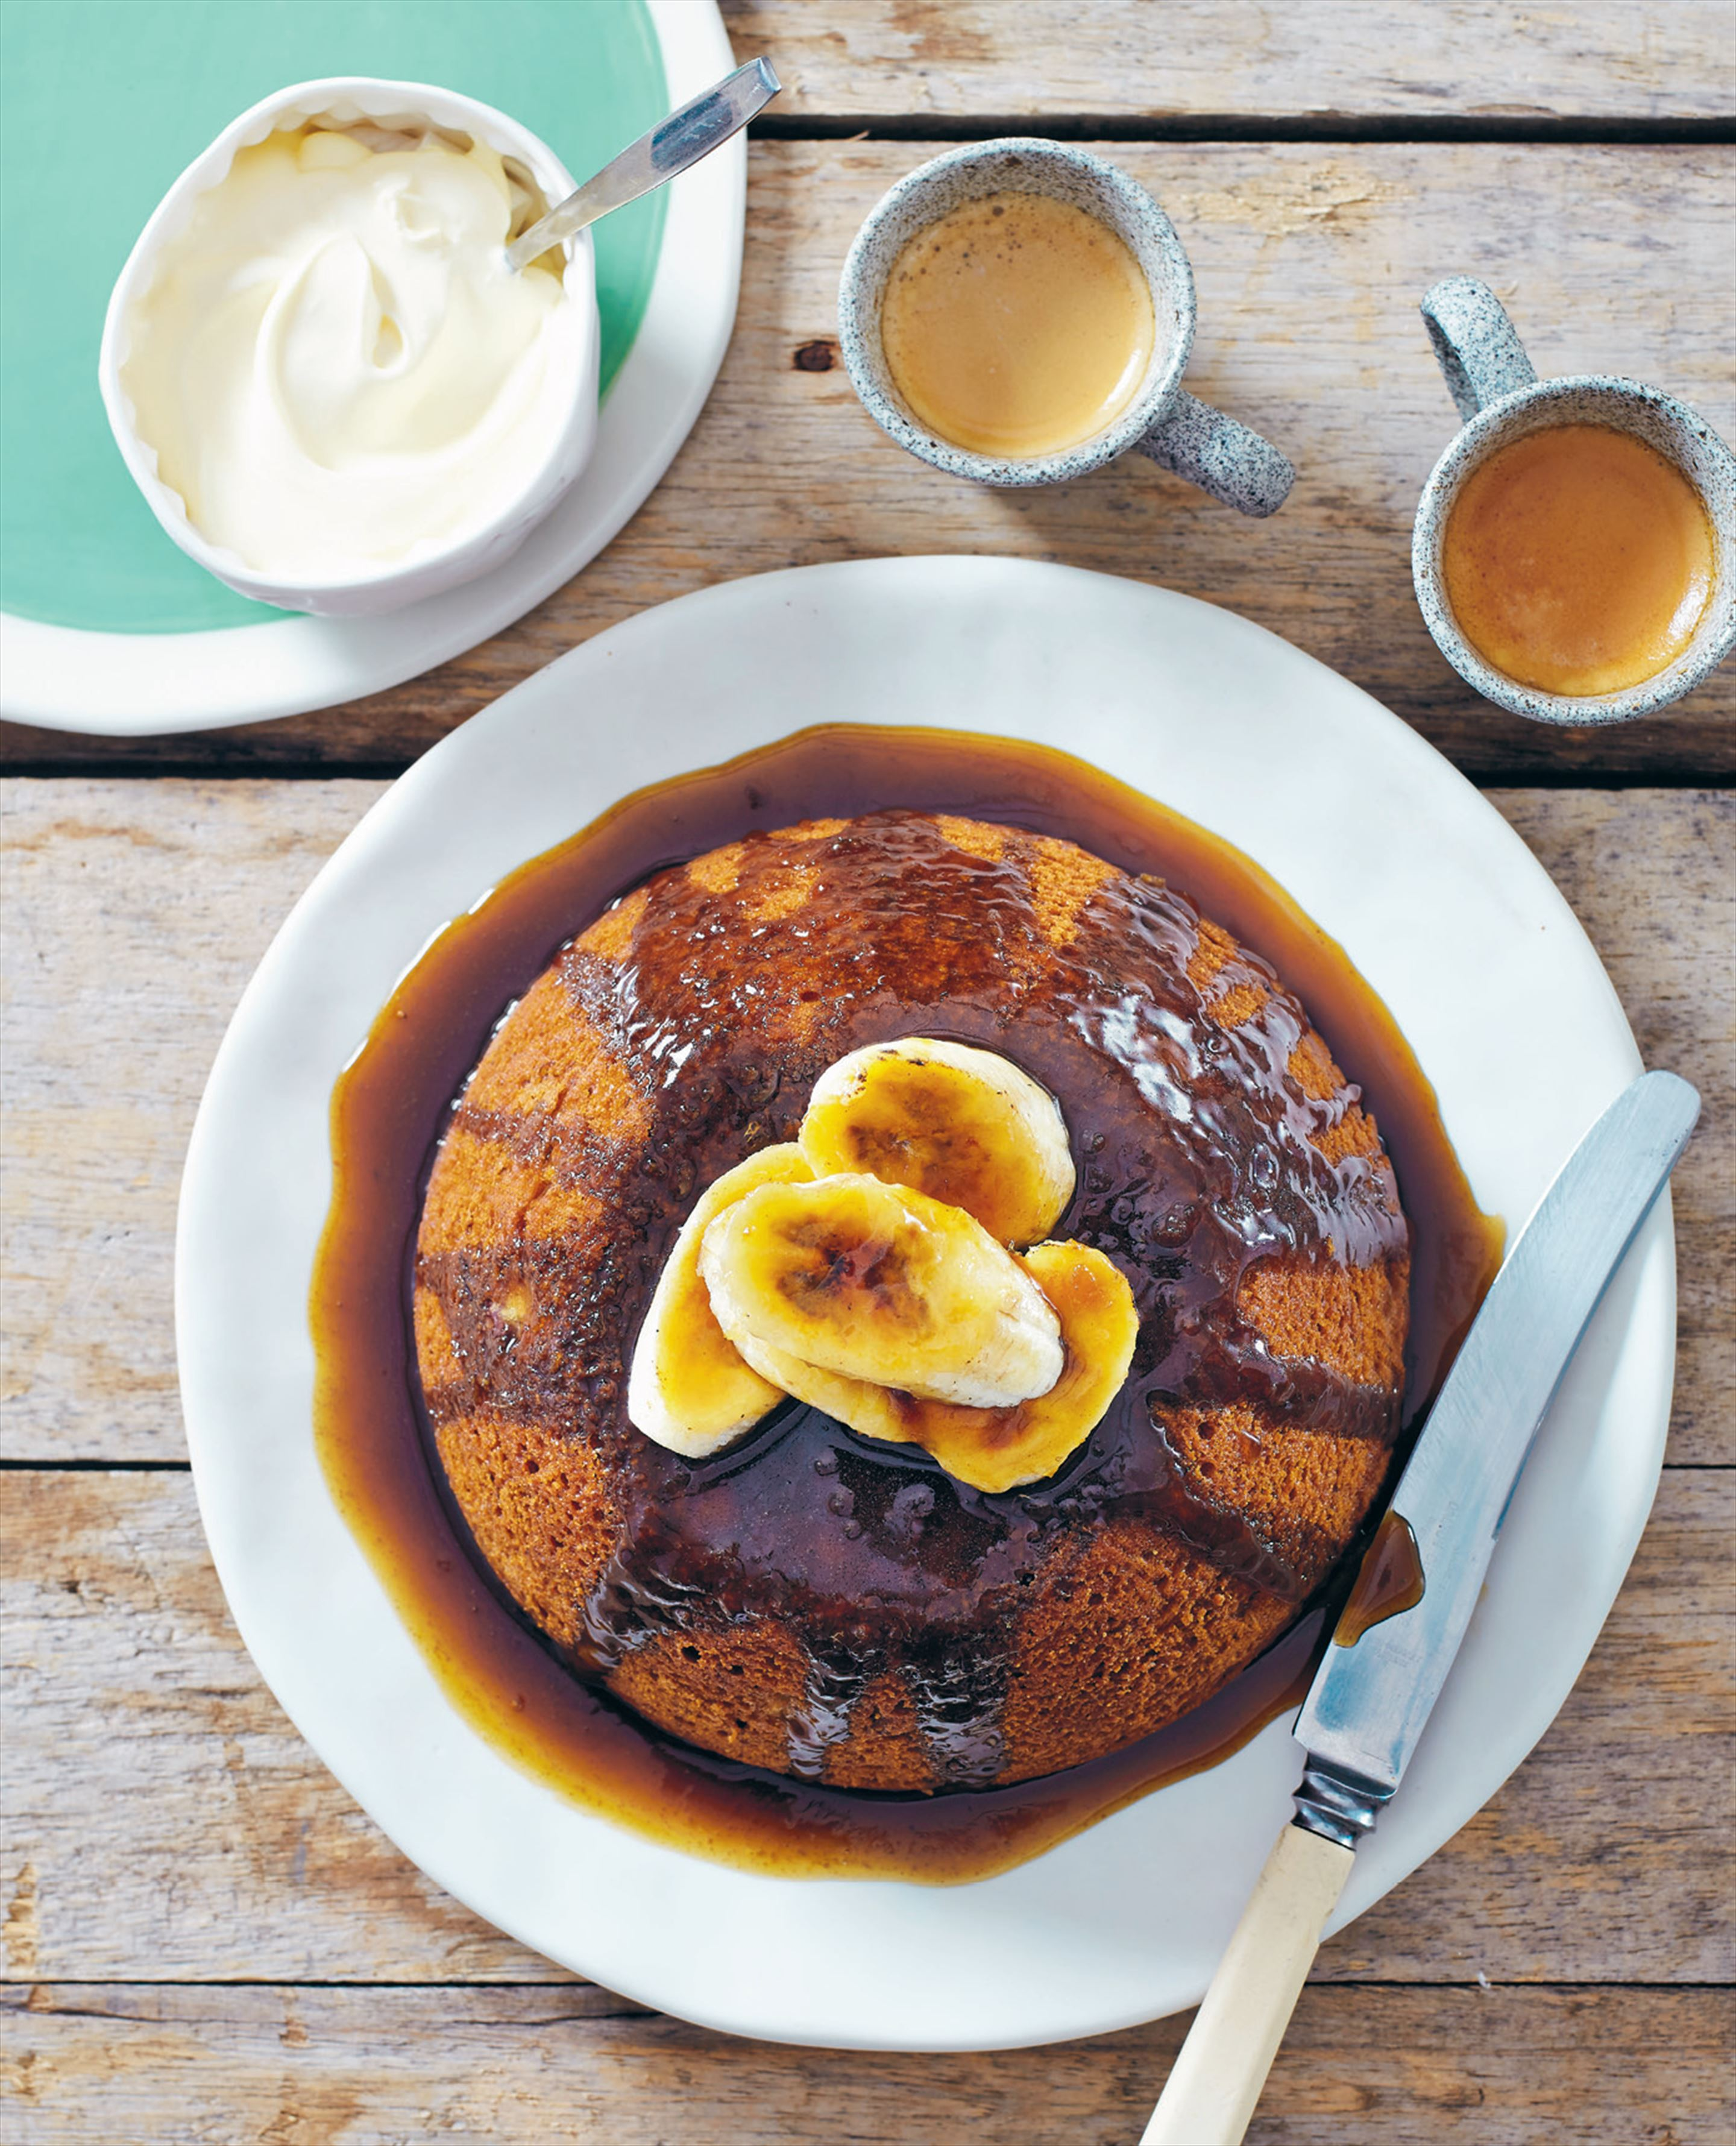 Steamed banana and ginger pudding with brûléed bananas